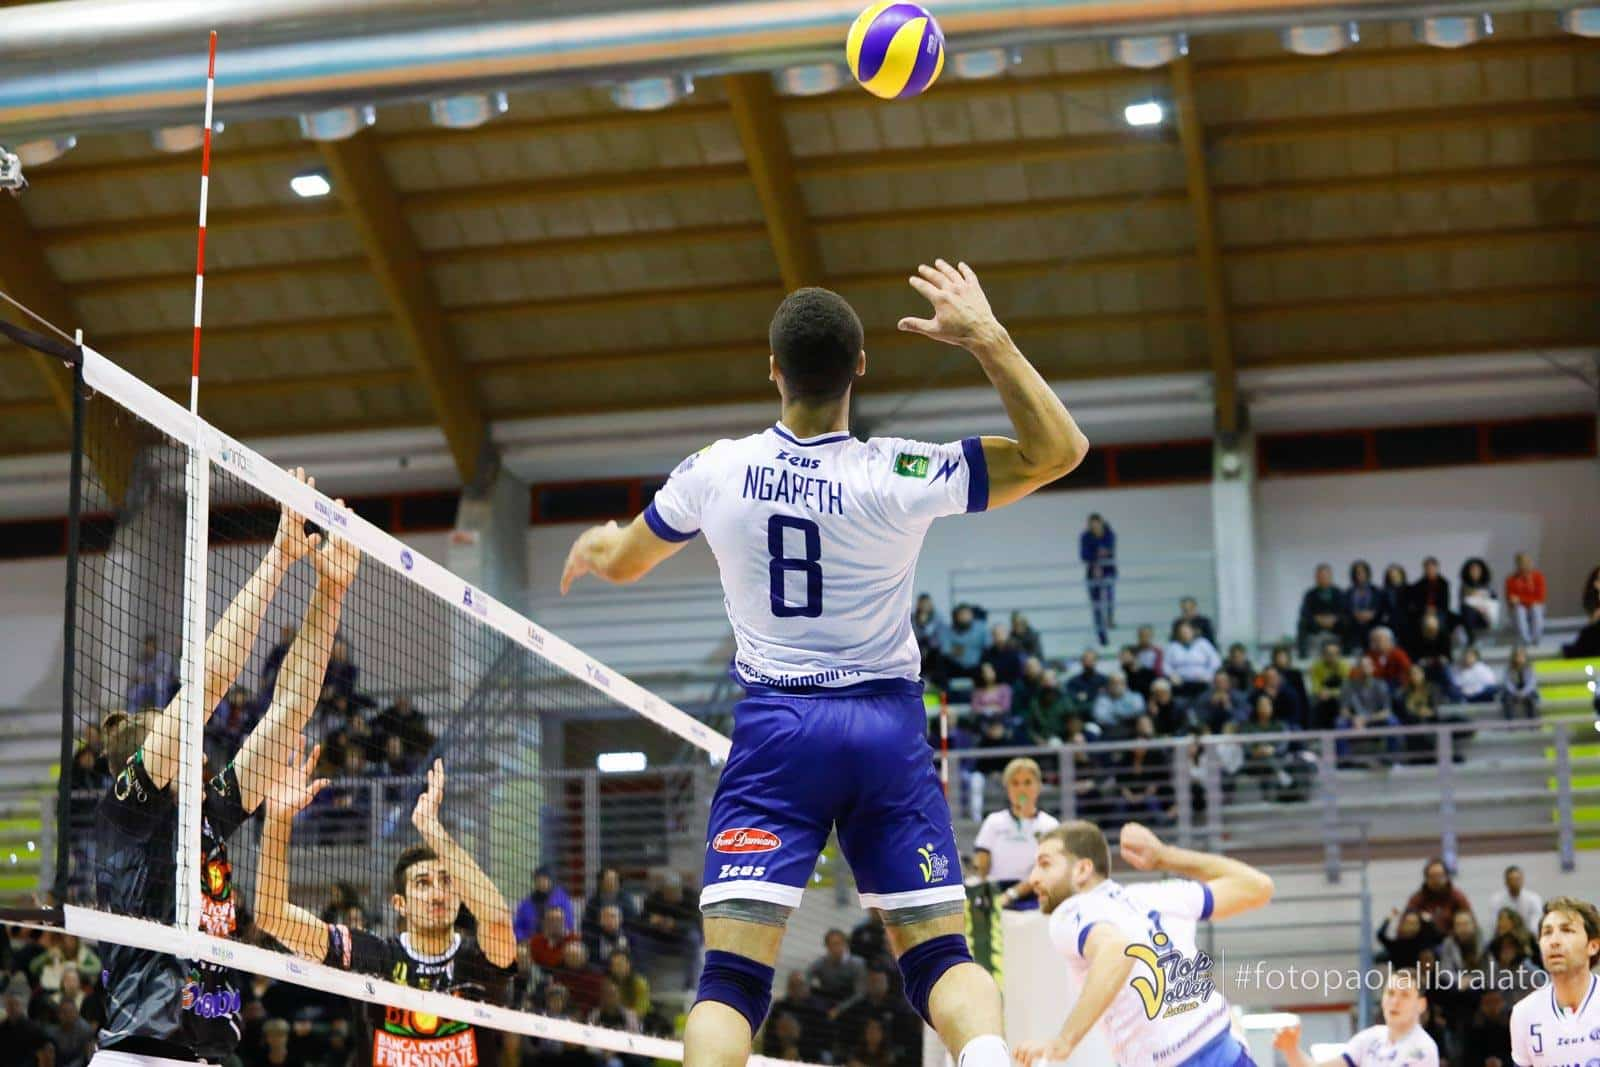 volleypack-focus-sur-swan-ngapeth-2019-10